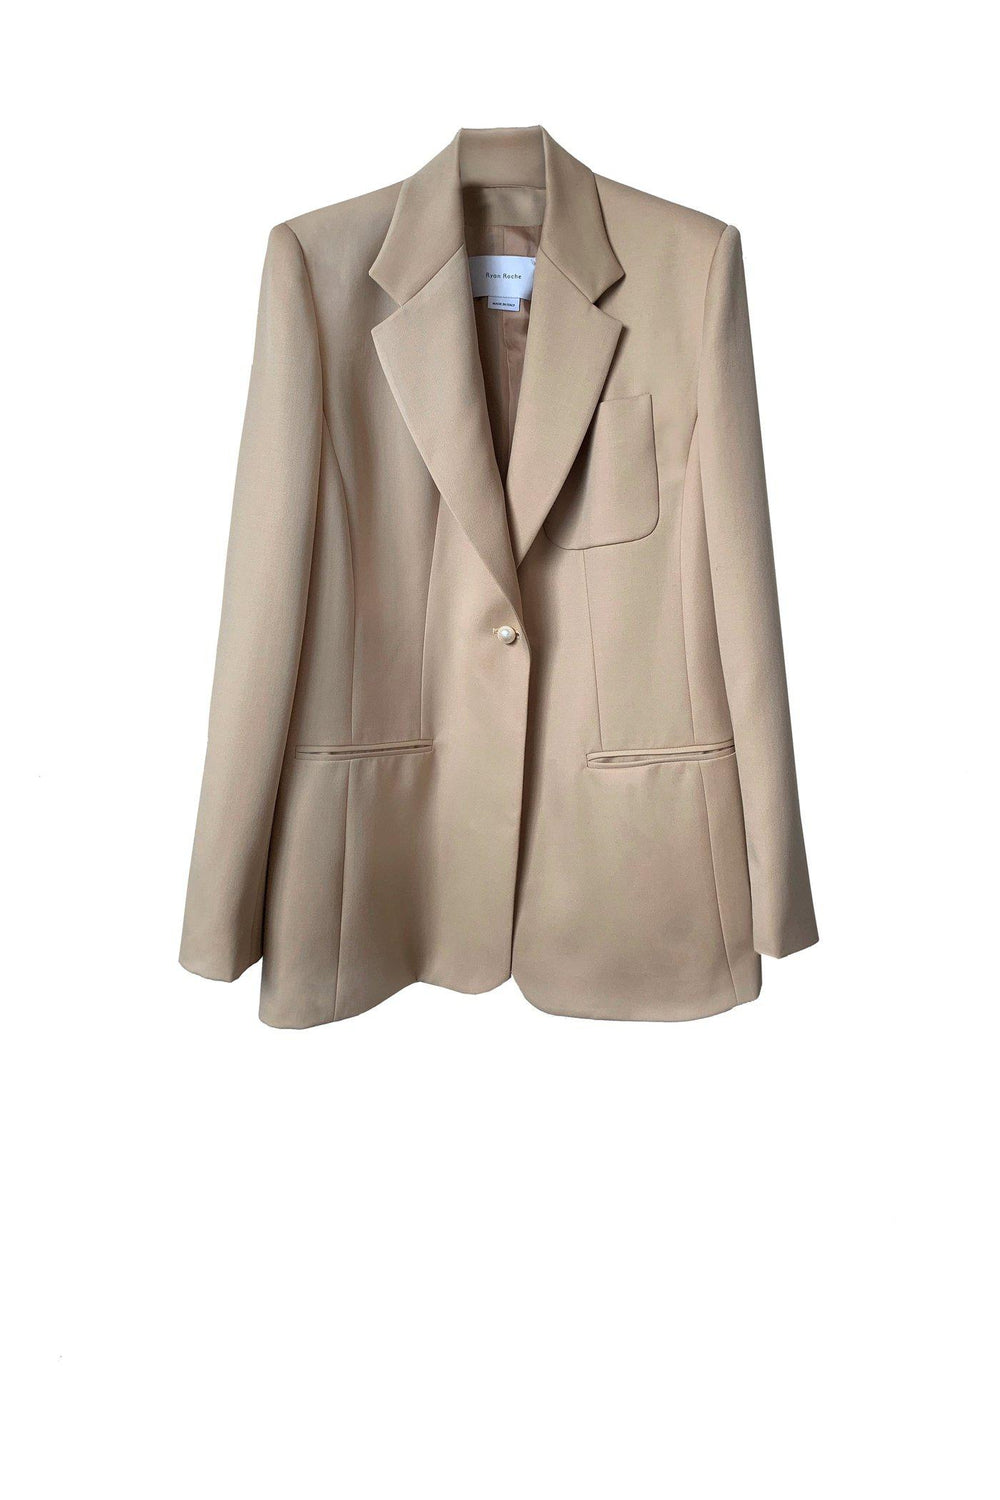 RYAN ROCHE Wool gabardine tailored blazer with single pearl button